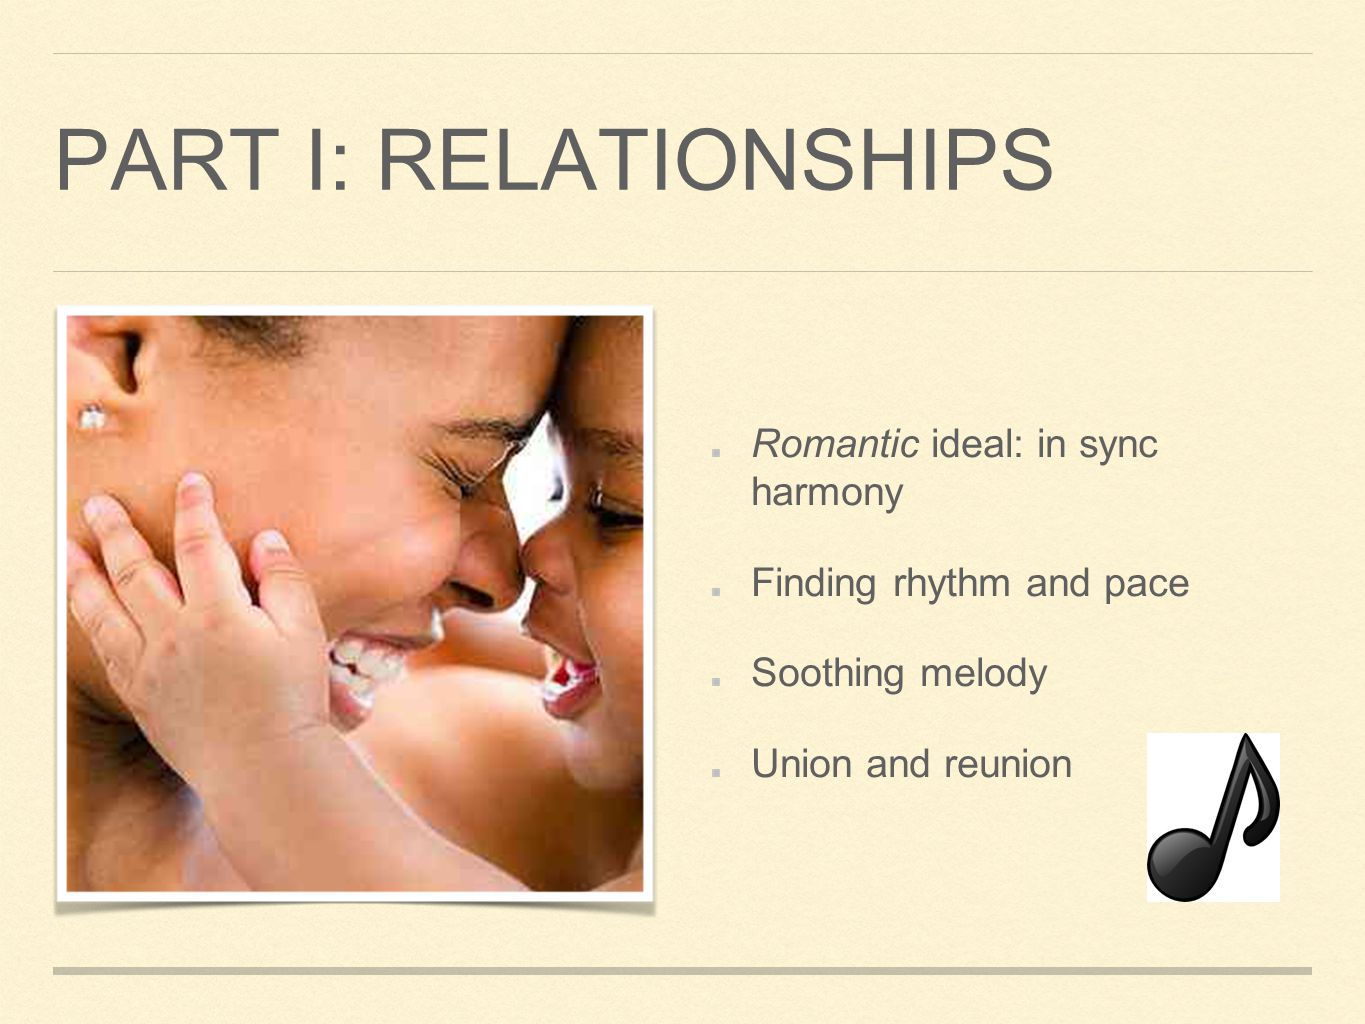 PART I: RELATIONSHIPS Romantic ideal: in sync harmony Finding rhythm and pace Soothing melody Union and reunion